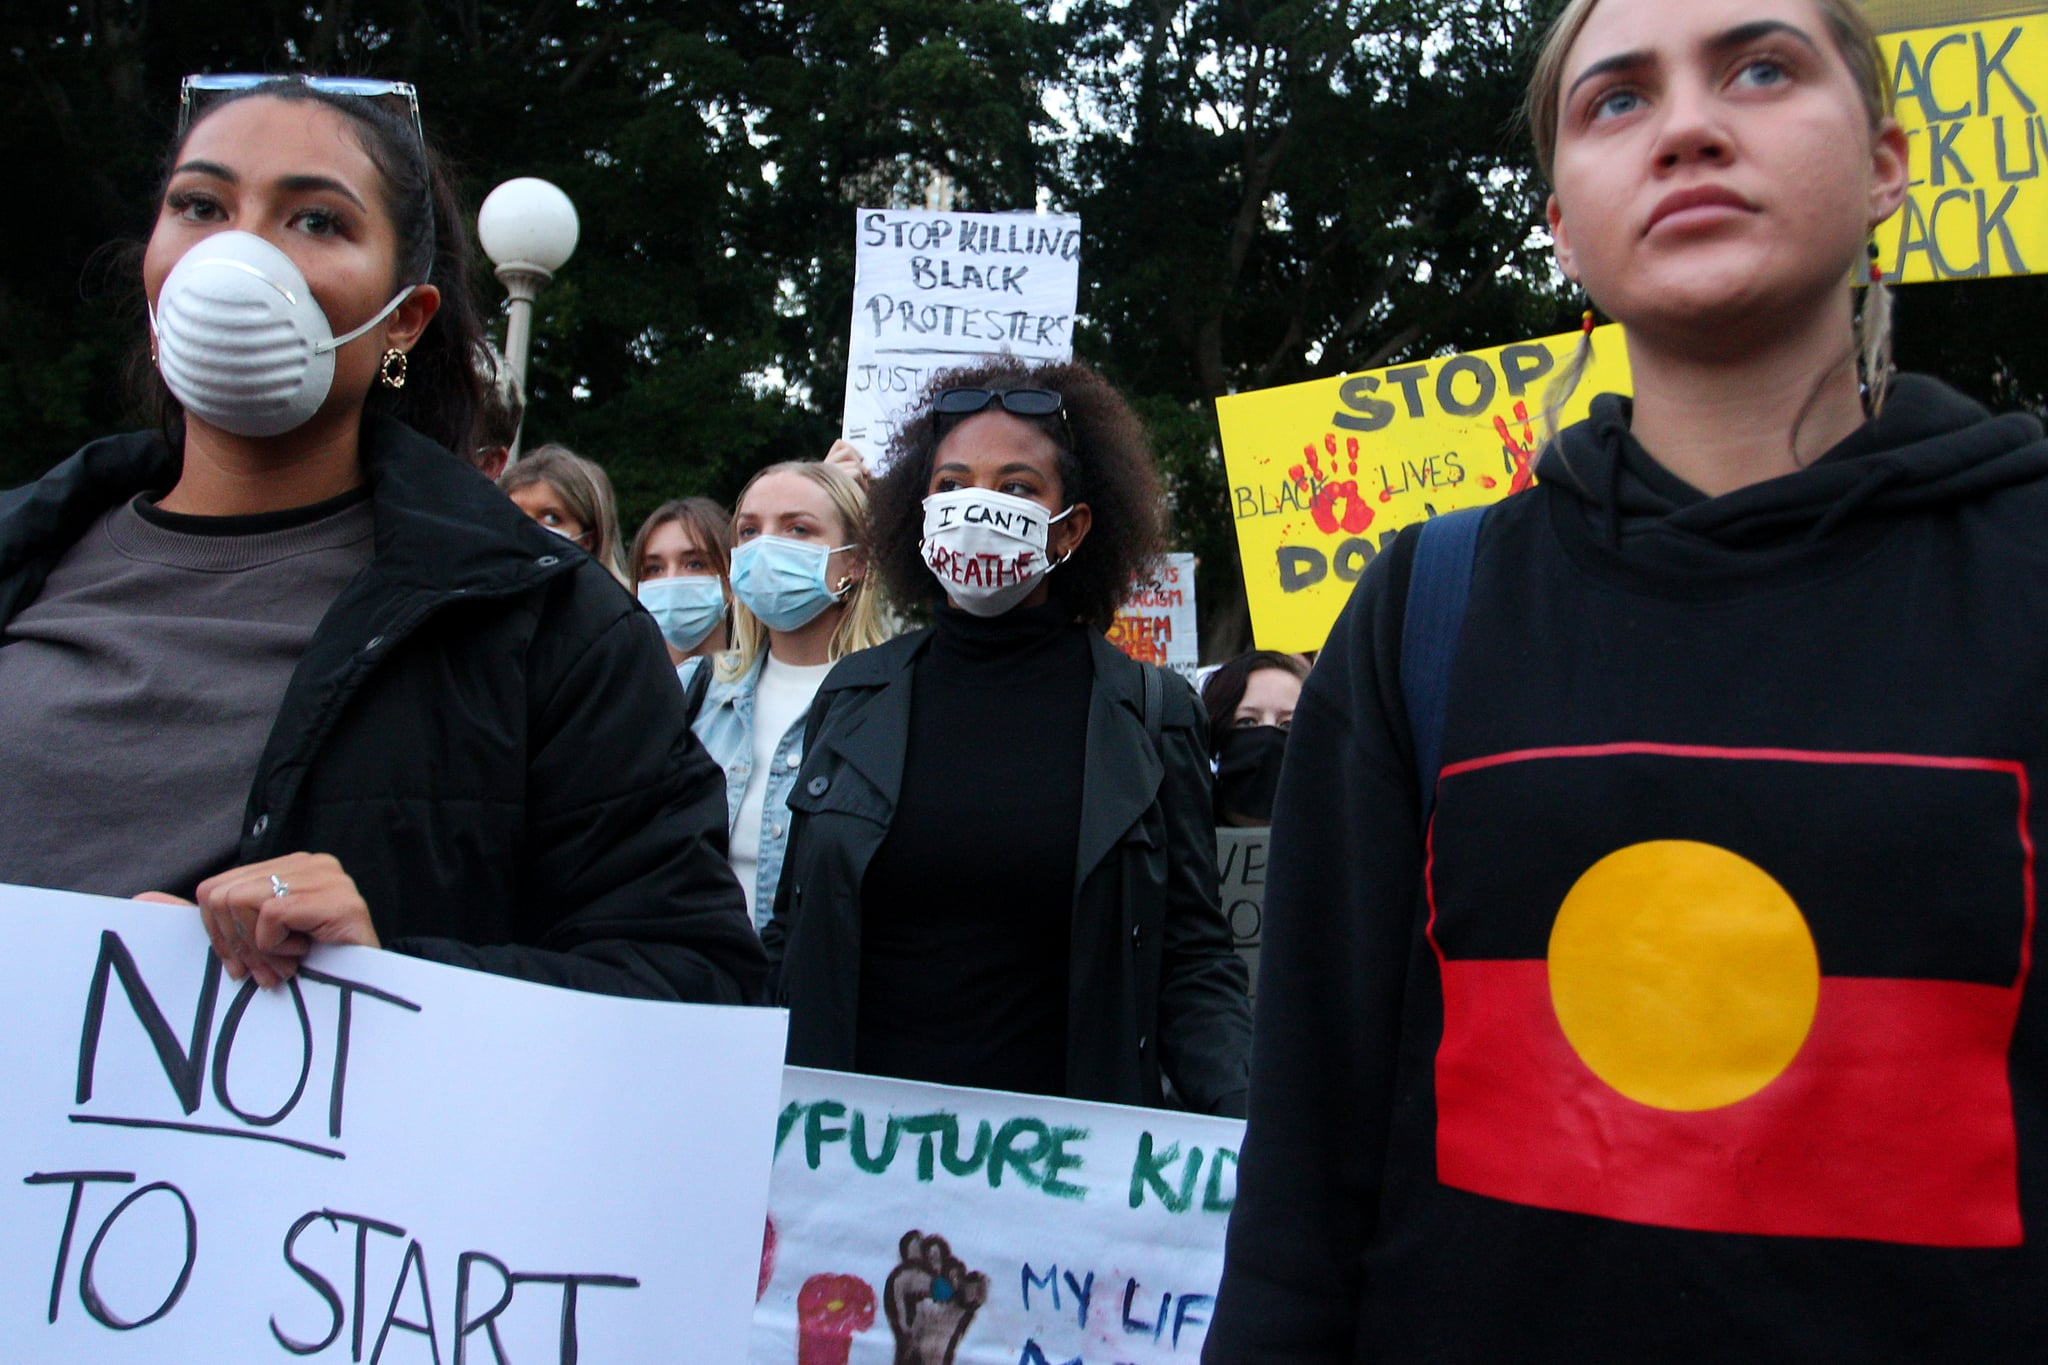 SYDNEY, AUSTRALIA - JUNE 02: Protesters demonstrate in Hyde Park during a 'Black Lives Matter' rally on June 02, 2020 in Sydney, Australia. The event was organised to rally against aboriginal deaths in custody in Australia as well as in solidarity with protests across the United States following the killing of an unarmed black man George Floyd at the hands of a police officer in Minneapolis, Minnesota. (Photo by Lisa Maree Williams/Getty Images)